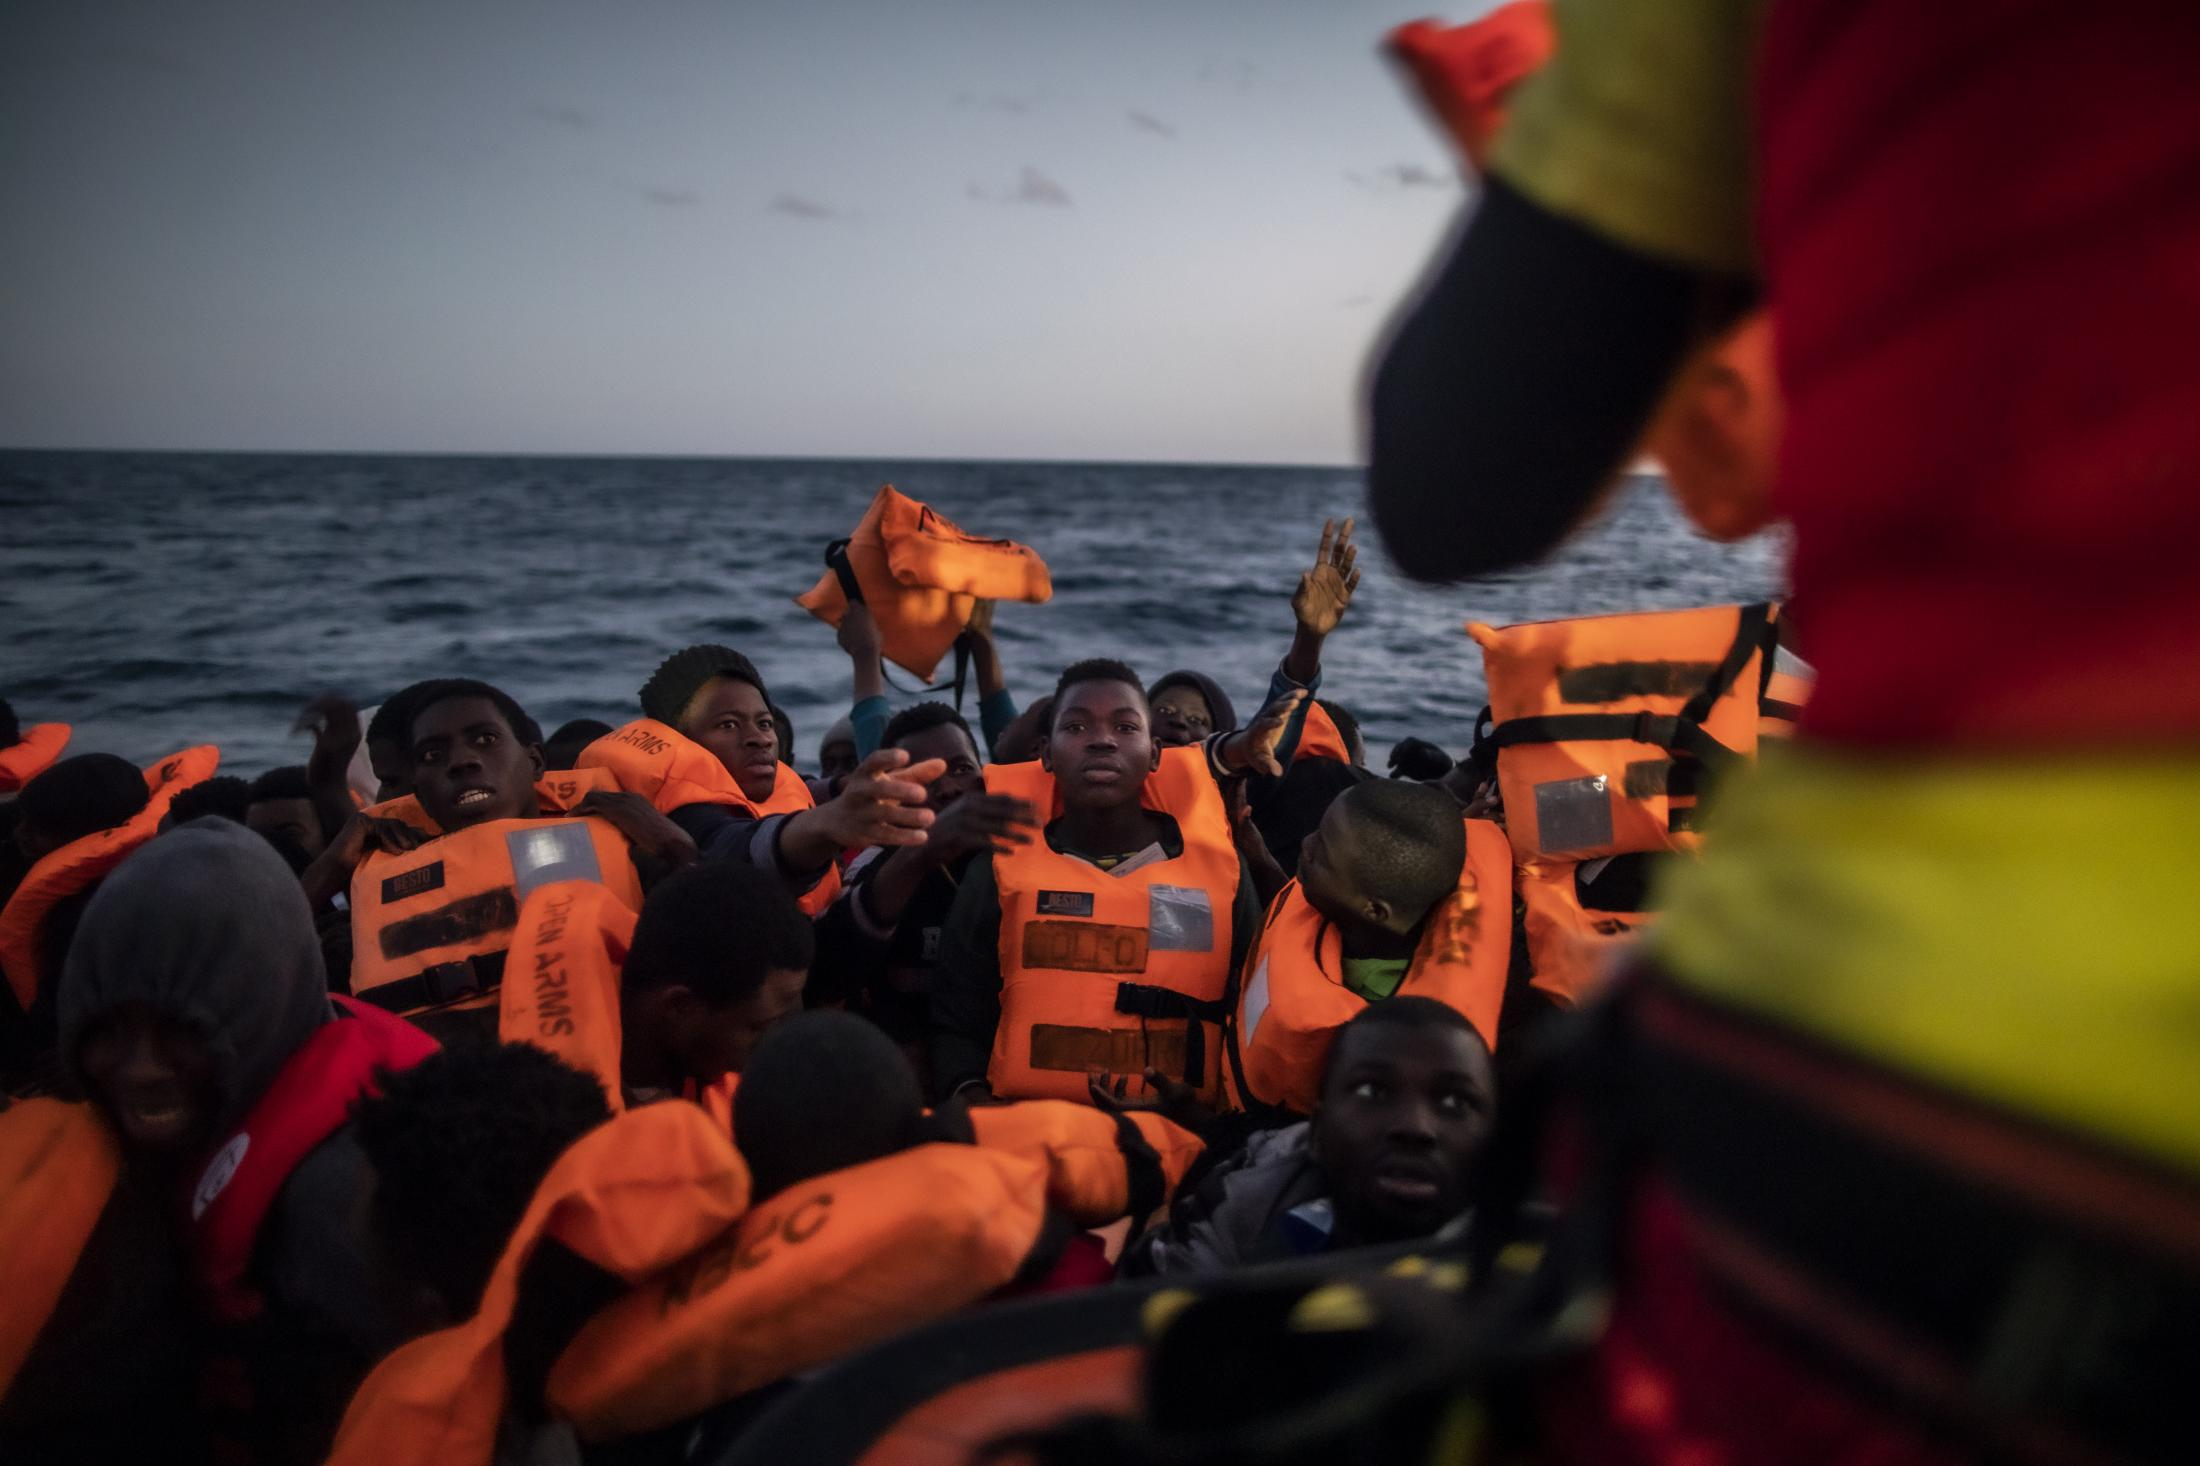 Rescuer Alberto Agrelo distributes the waistcoats to all the migrants, in the centre of the picture, Bamba Bourahima, 14 years old from Ivory Coast Migrants and refugees from different African nationalities wait for assistance aboard an overcrowded rubber boat, as aid workers of the Spanish NGO Open Arms approach them in the Mediterranean Sea, international waters, at 80 miles off the Libyan coast, Saturday Feb. 13, 2021.